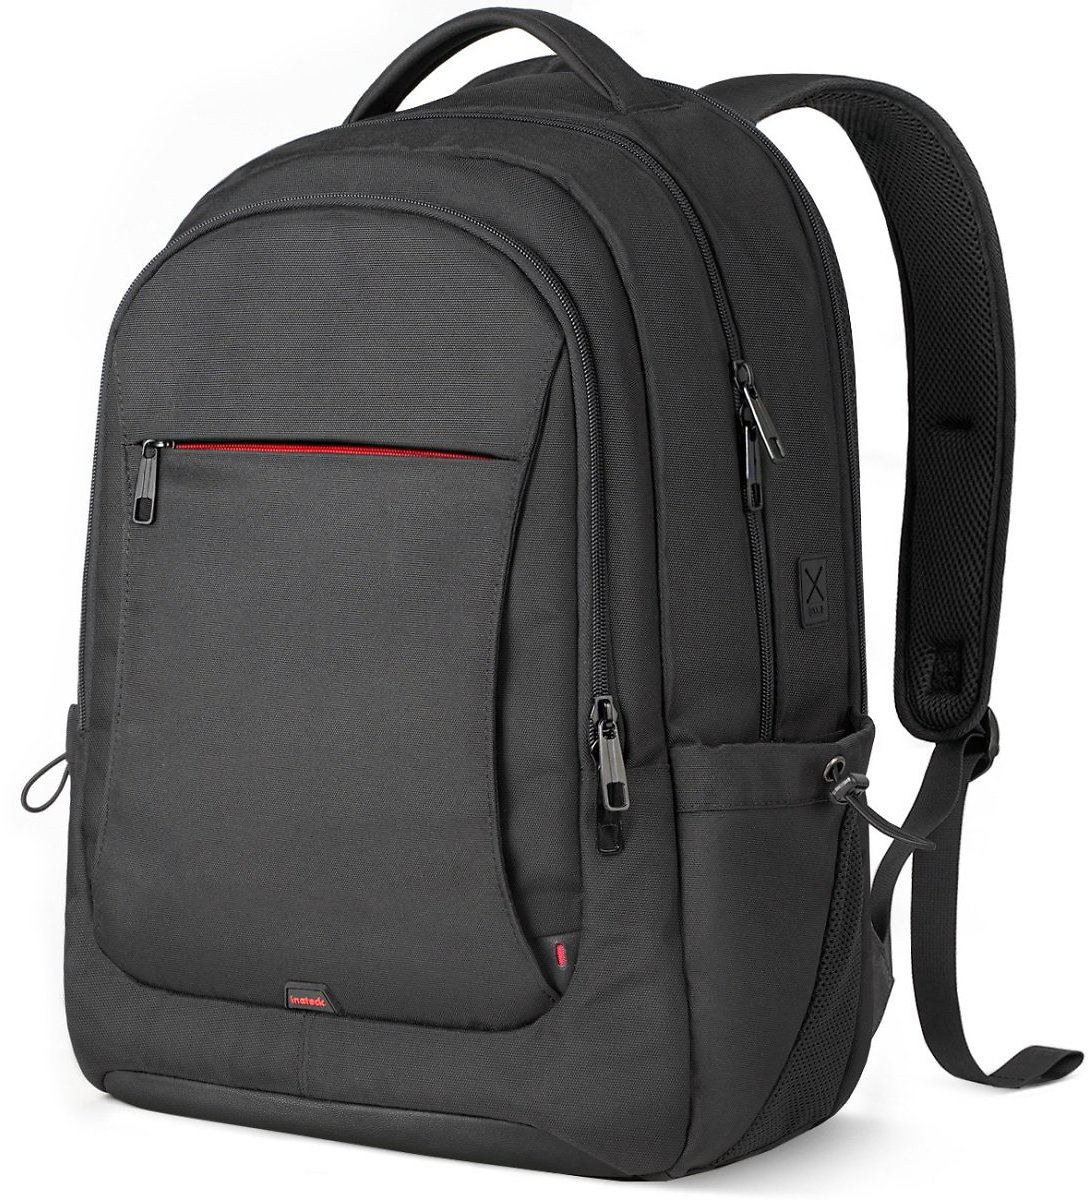 33L 15.6 Inch Carry On Backpack BP02003, Black